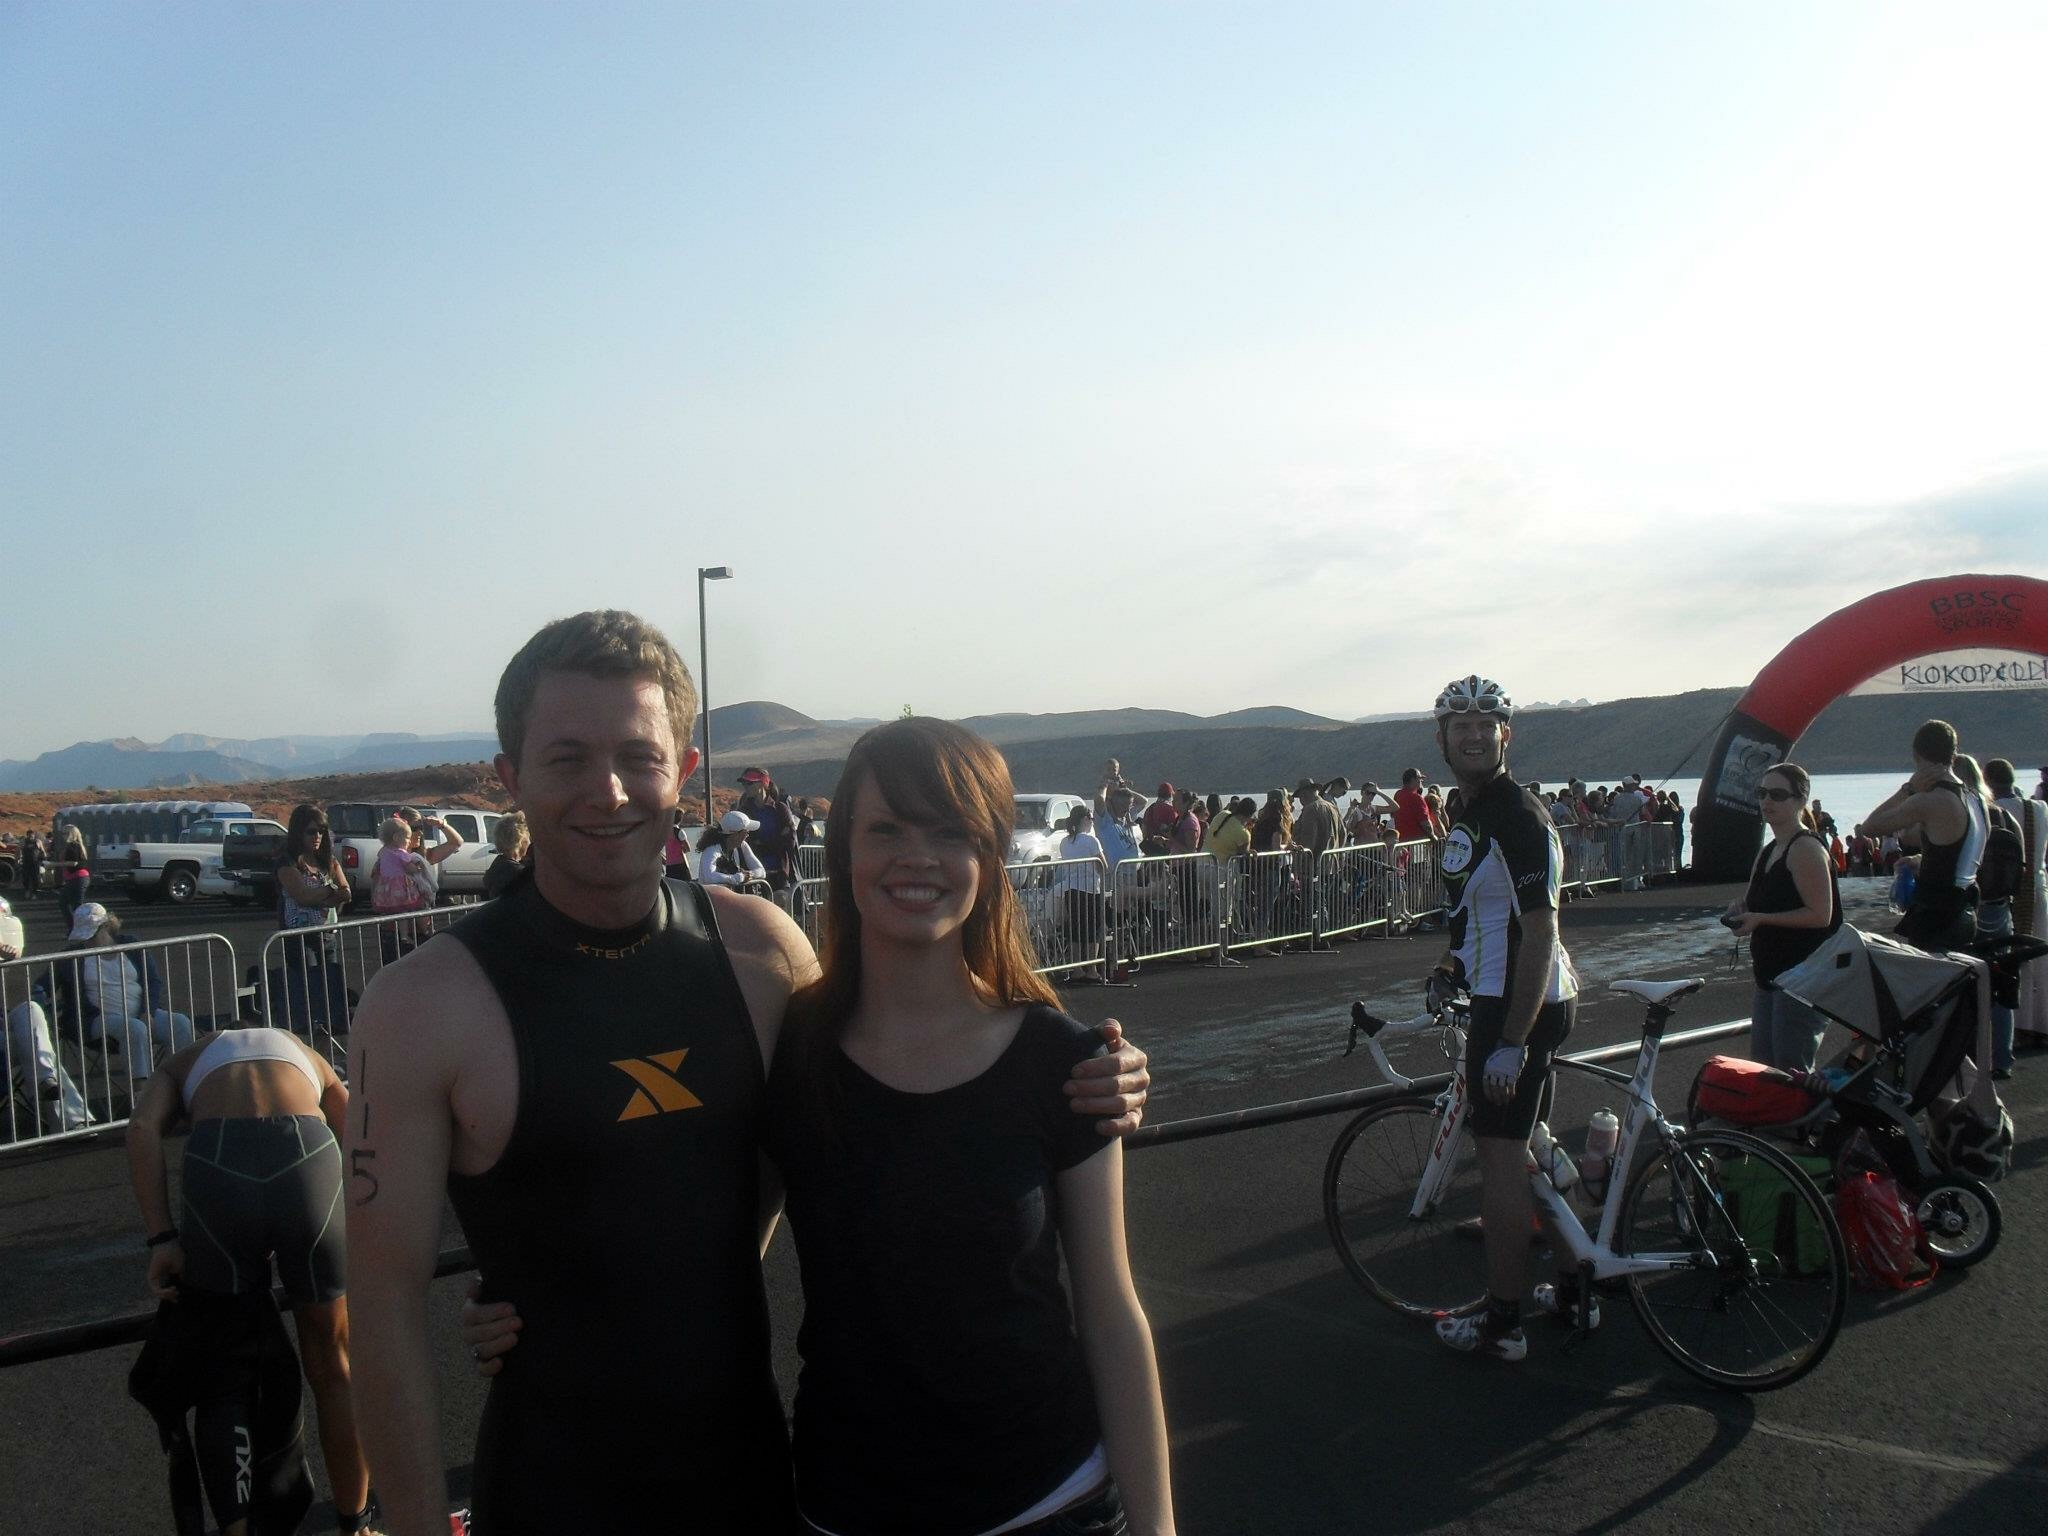 After one of his triathlons